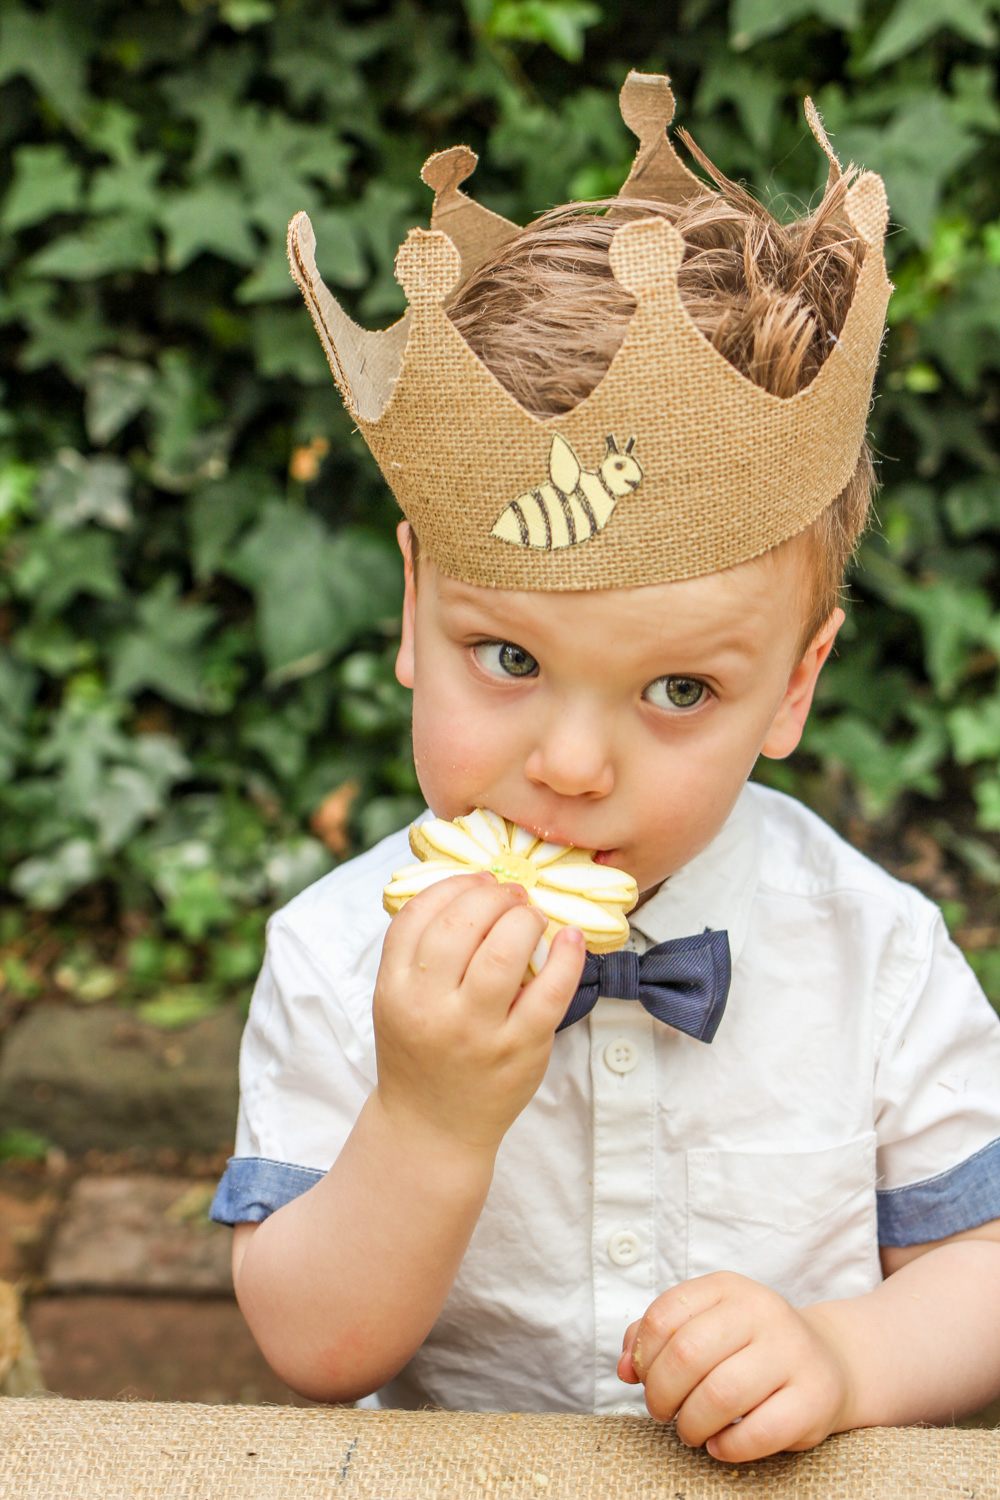 For more boys and unisex kids first birthday party inspiration visit the Goldfields Girl blog